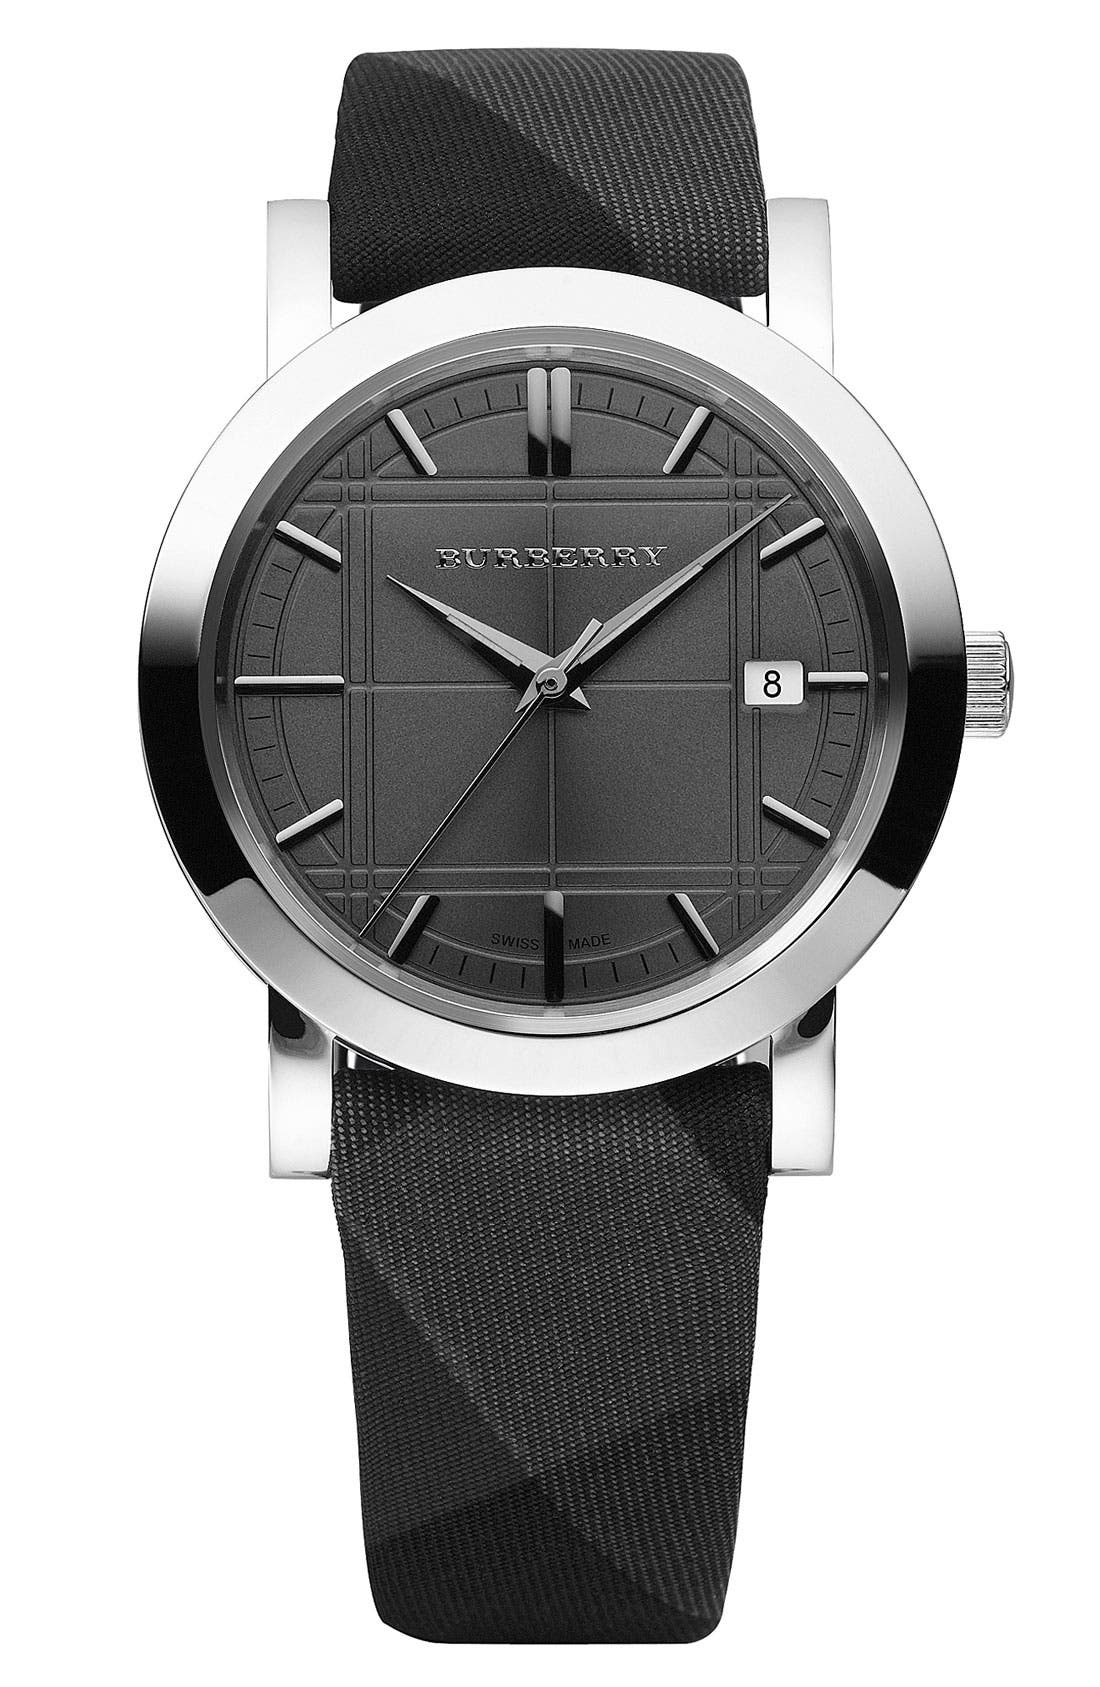 BURBERRY, Stainless Steel Round Case Watch, Main thumbnail 1, color, 001